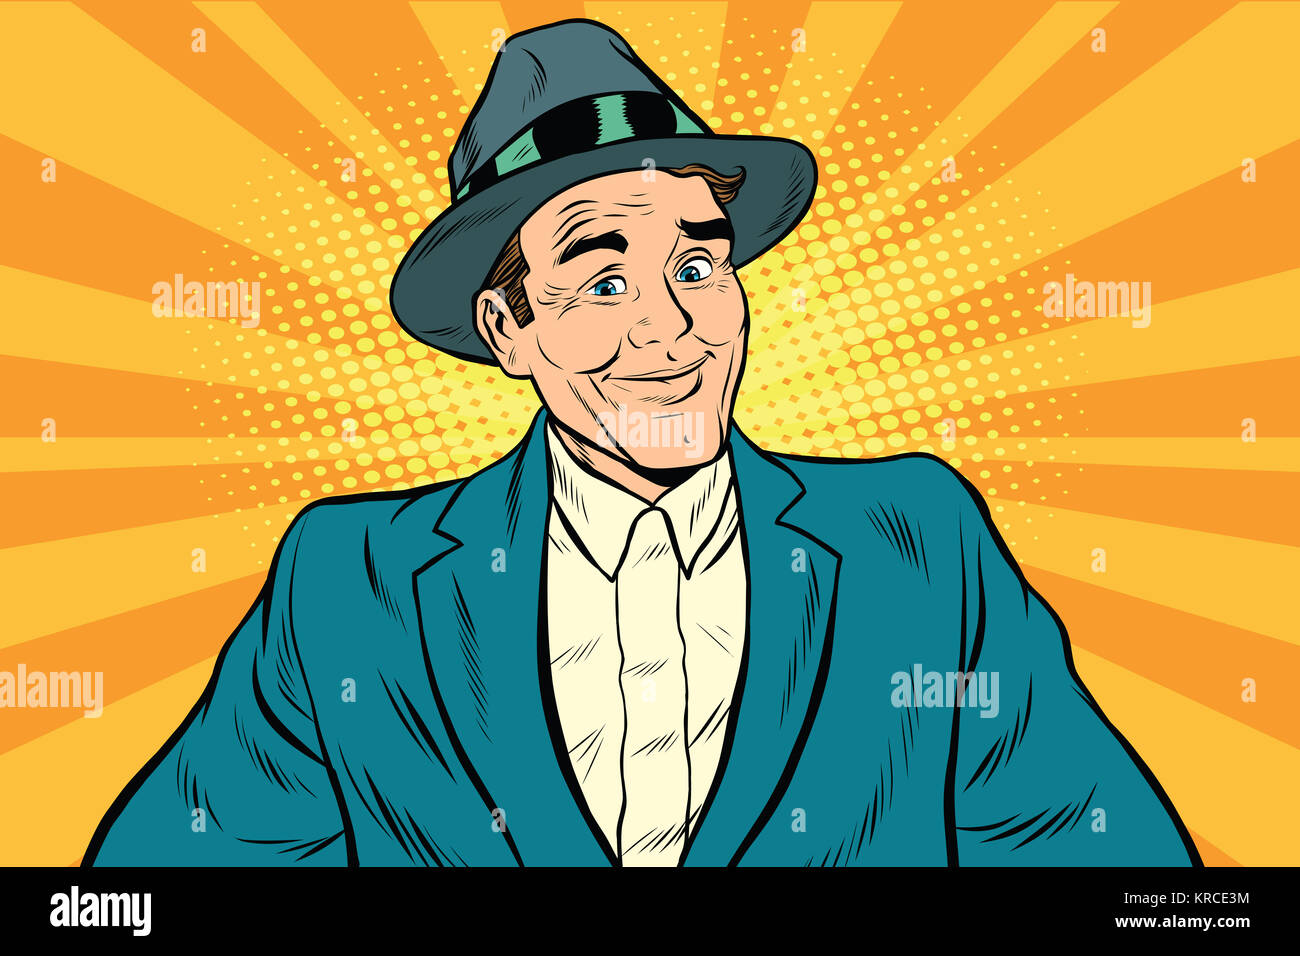 Smiling man without a tie - Stock Image